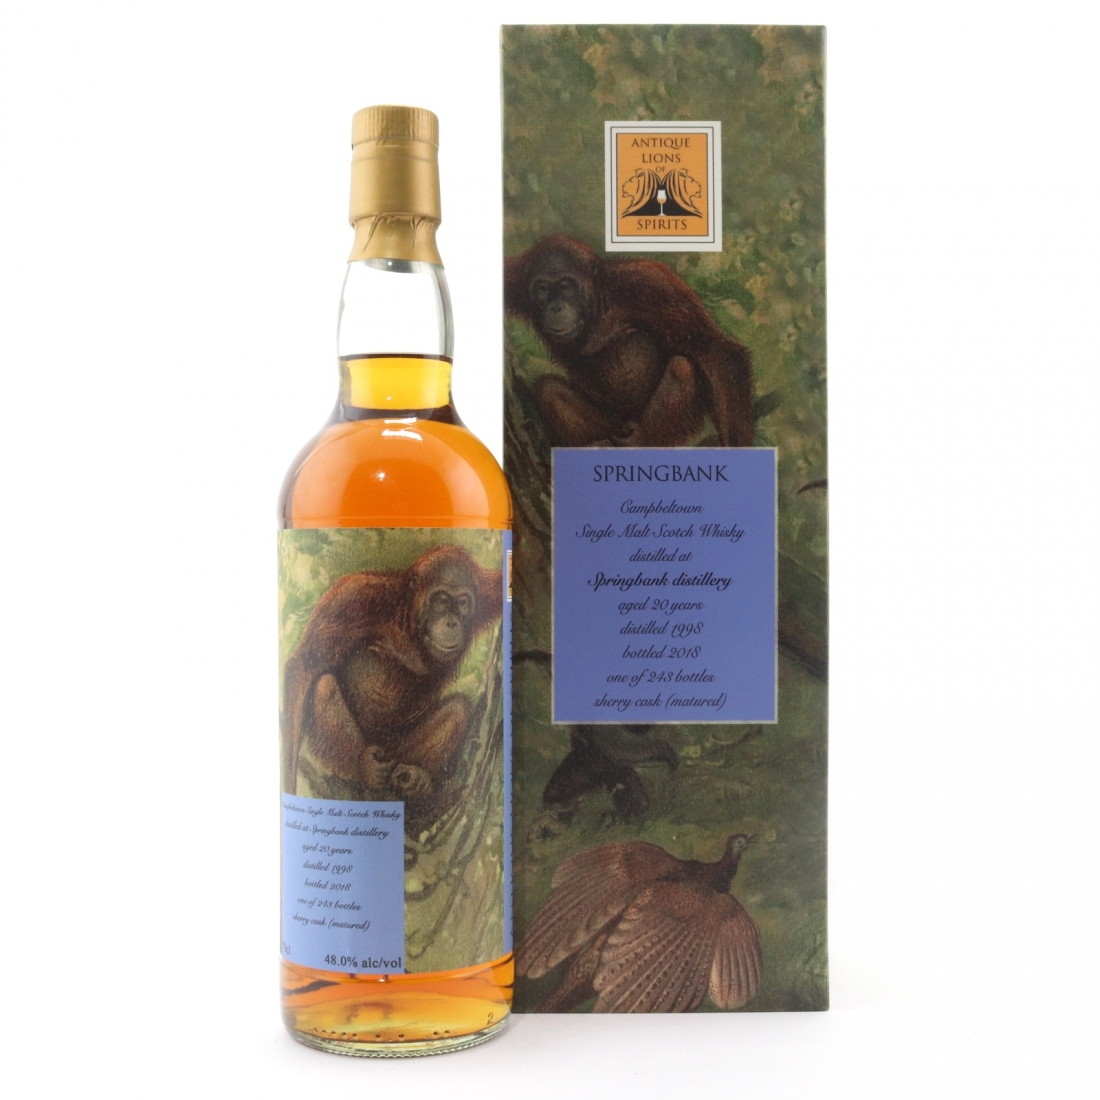 Springbank 1998 Antique Lions 20 Year Old / Savannah